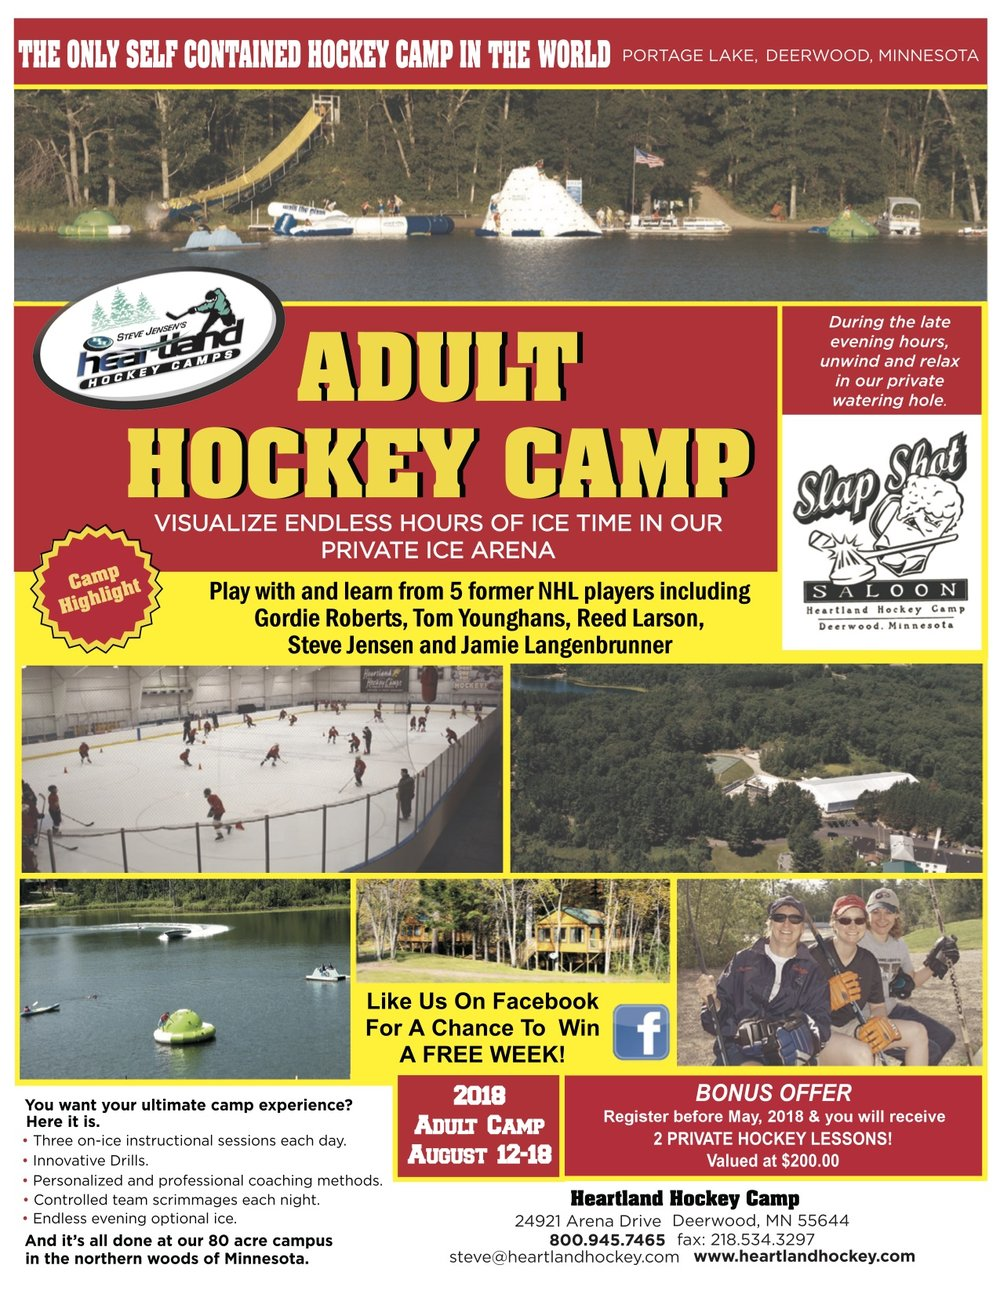 Adult Camp Hockey flyer